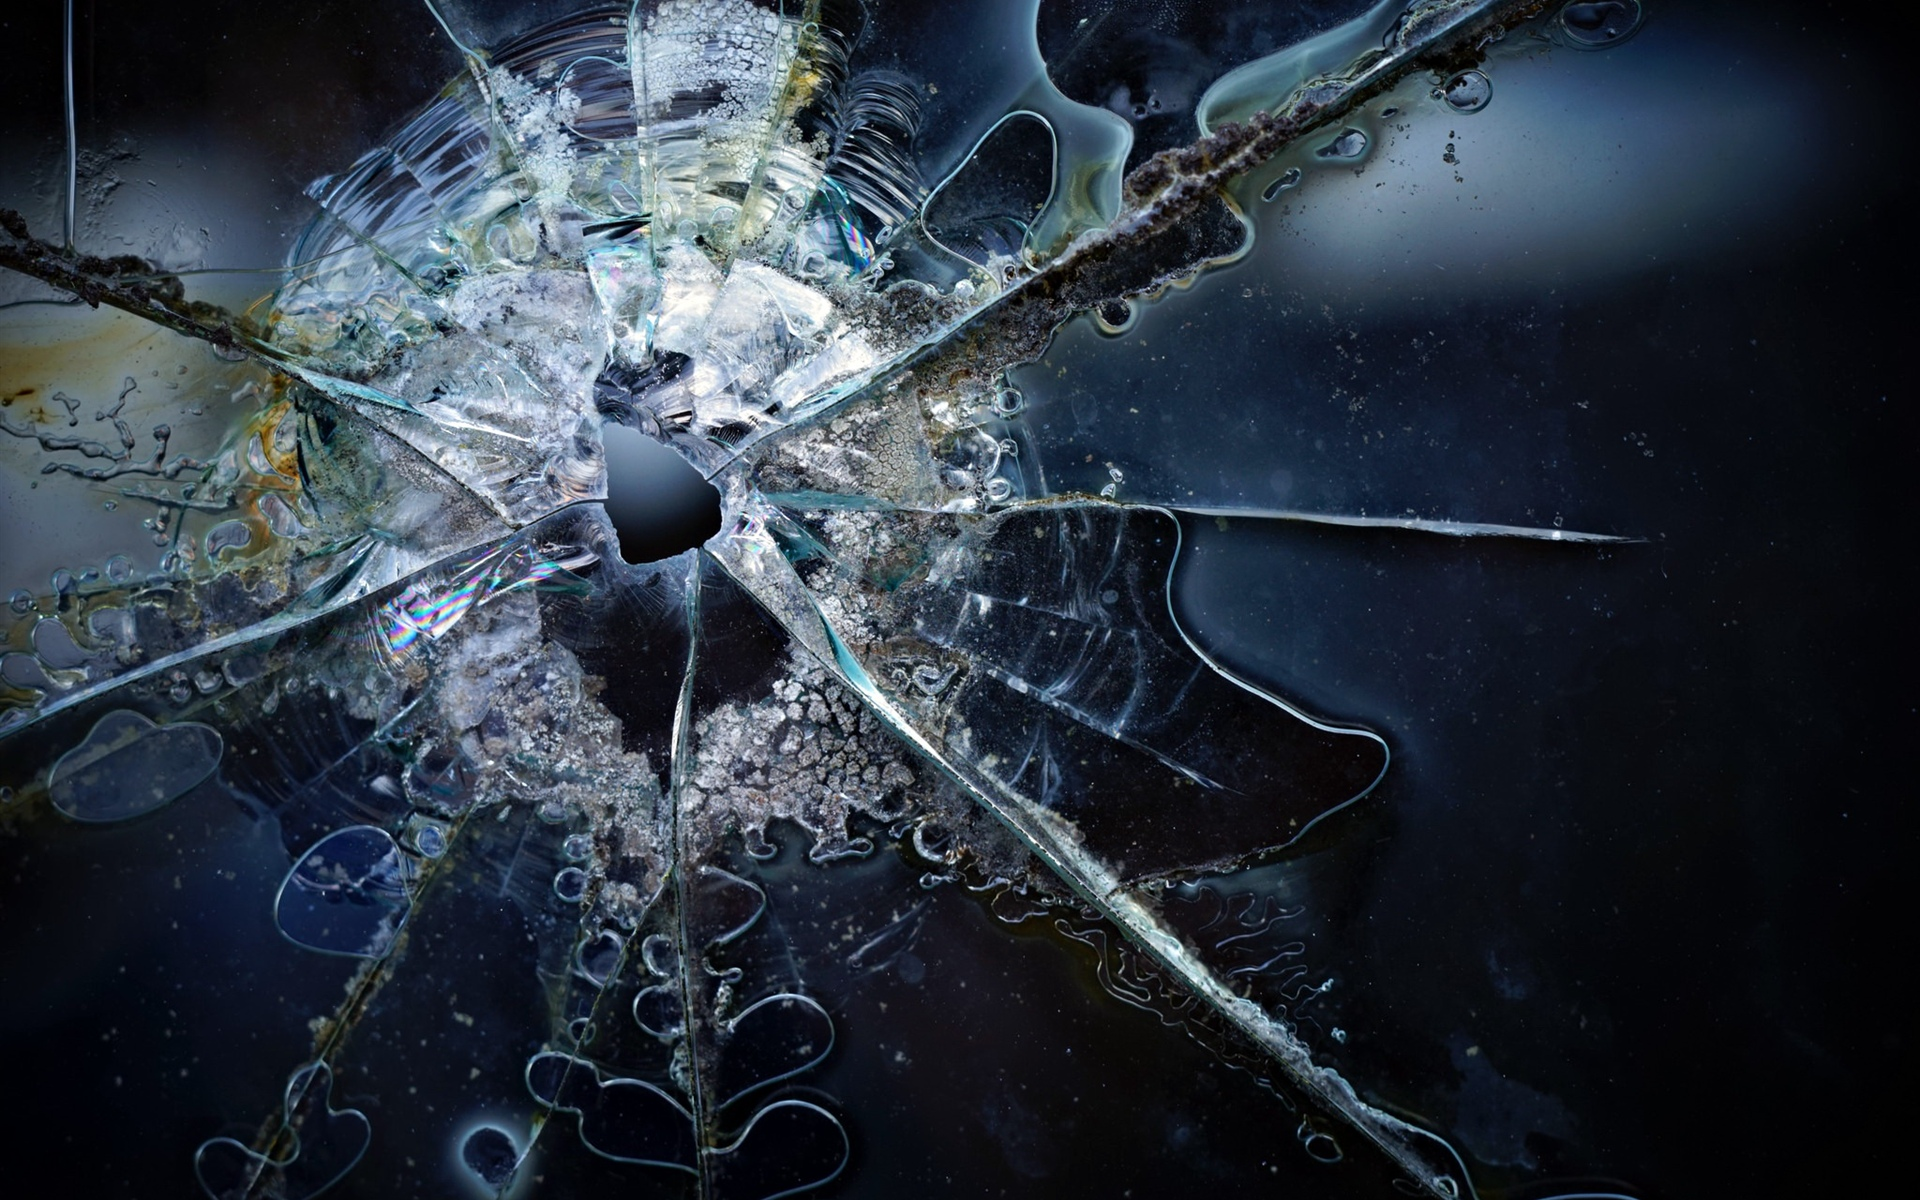 Glass broken 1920x1200 wallpaper